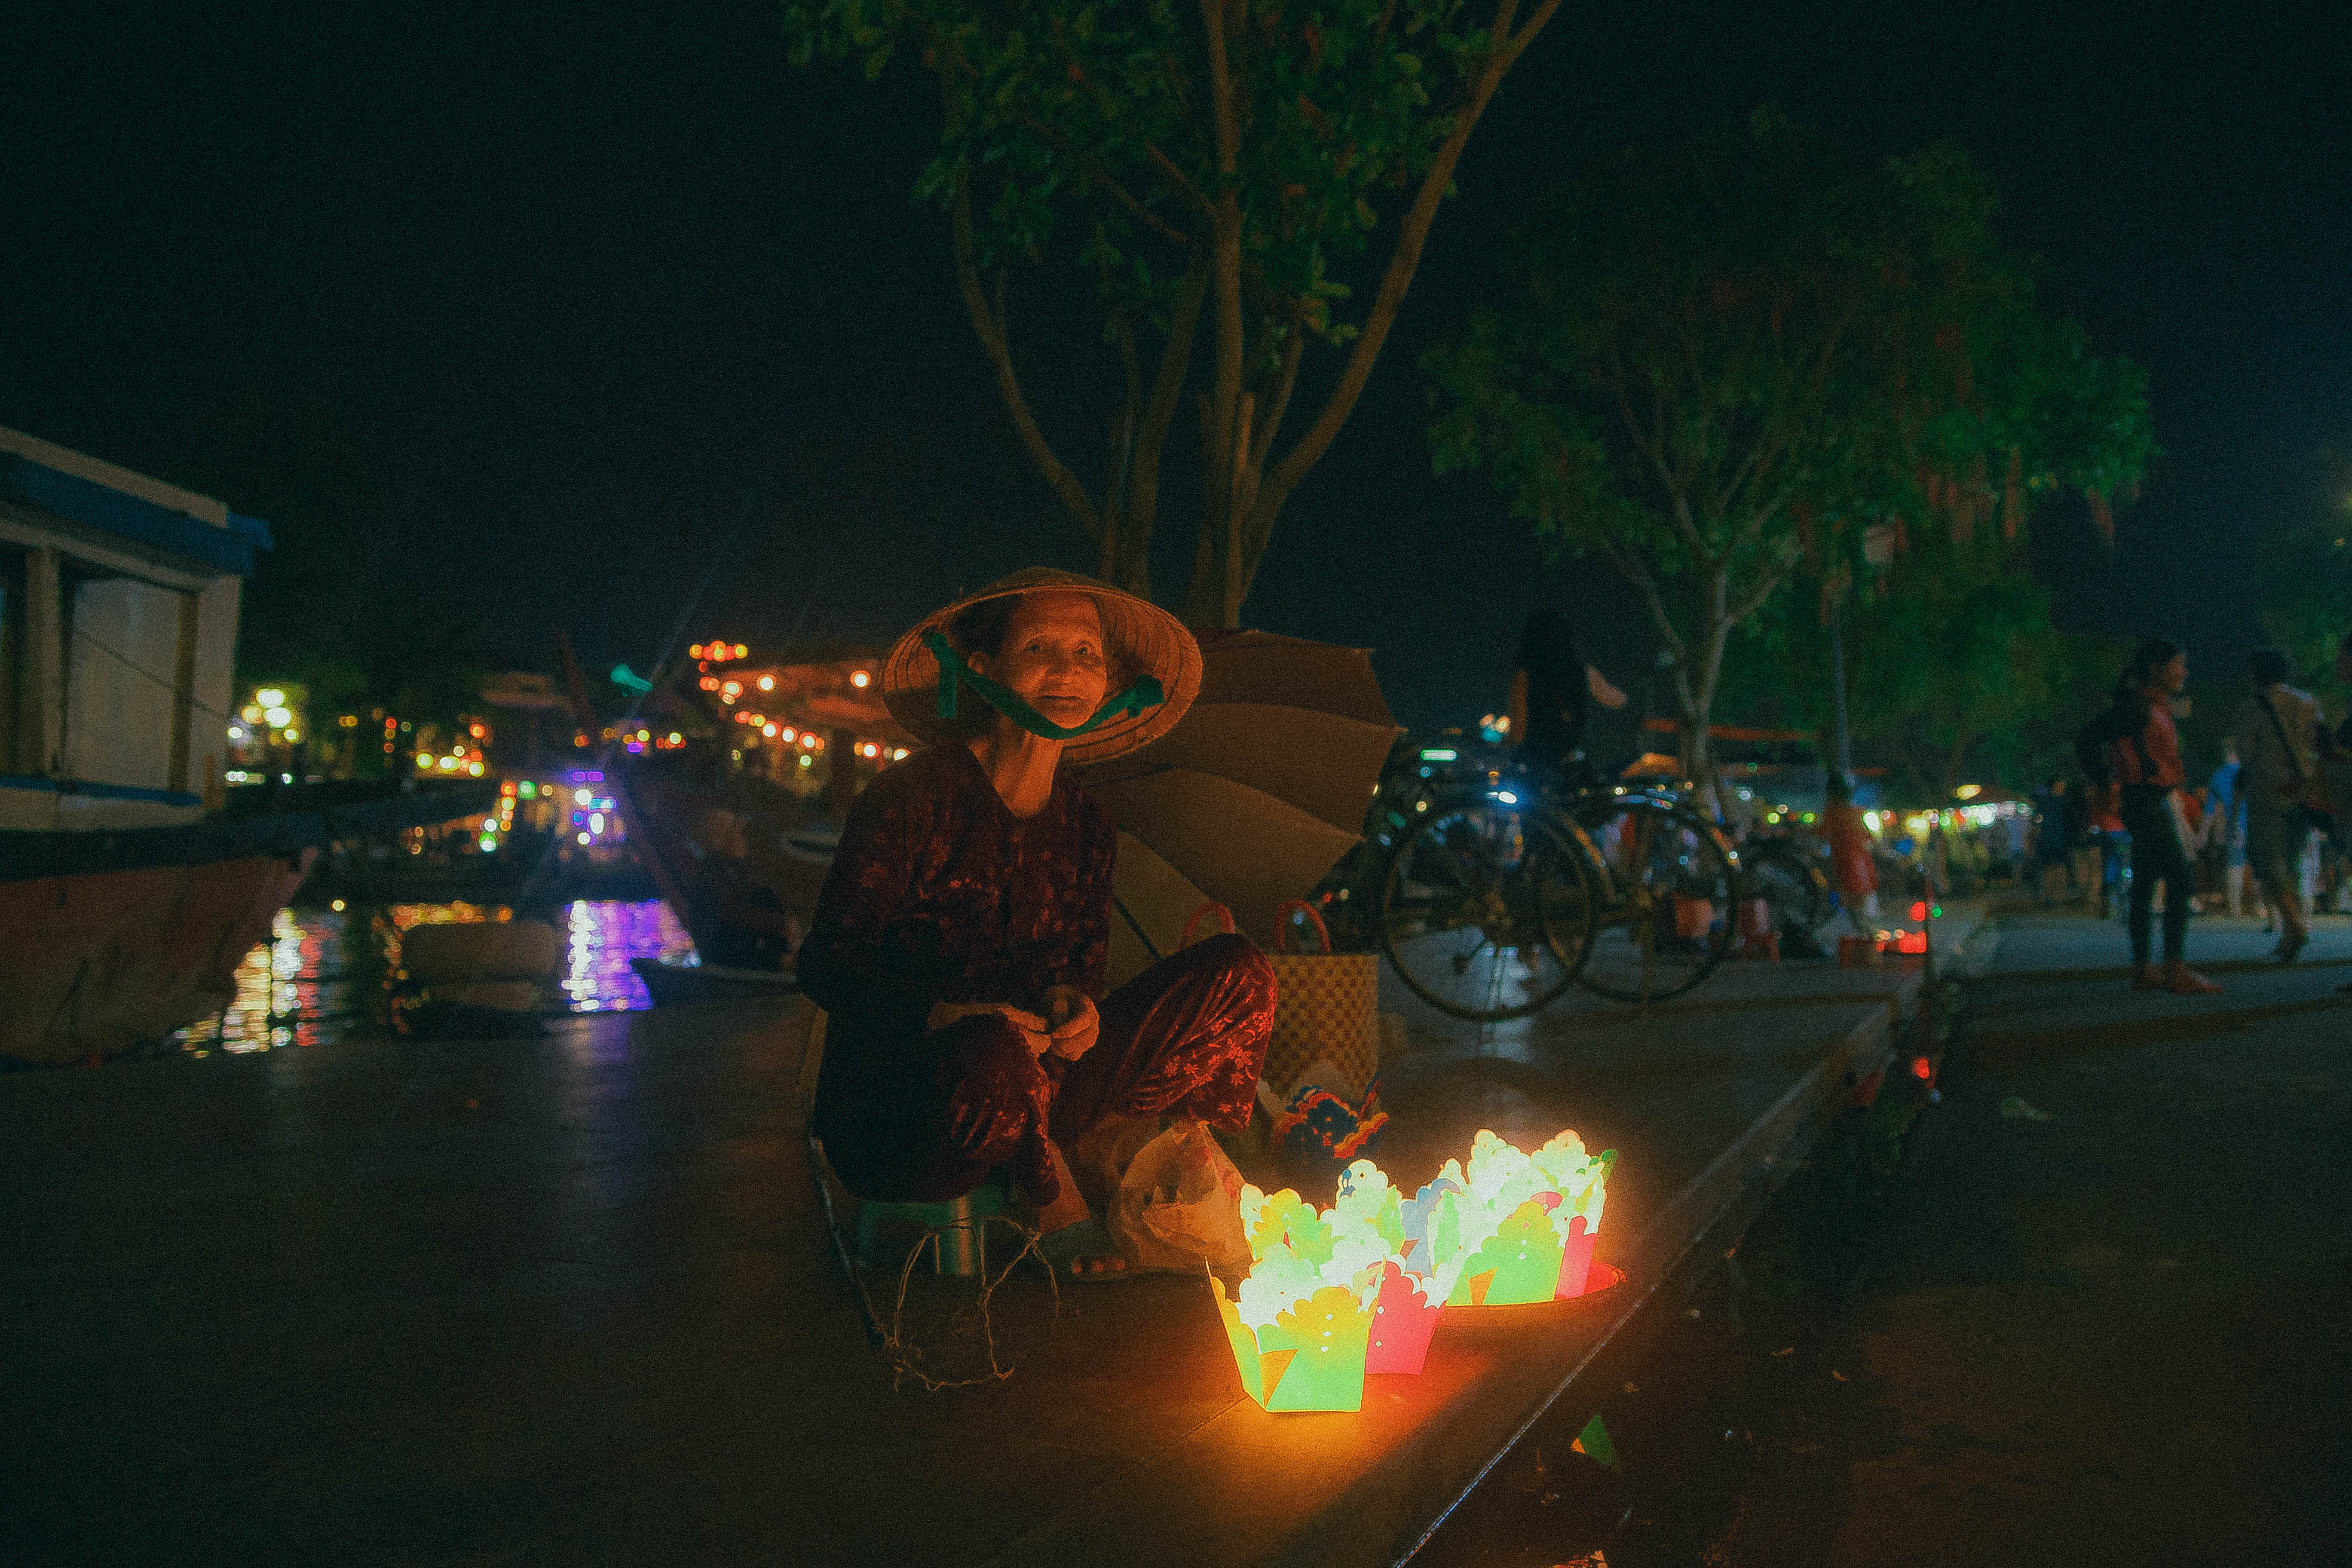 local vietnamese lady lightning a candle in ancient lantlern city hoi an south east asia ambient market river side